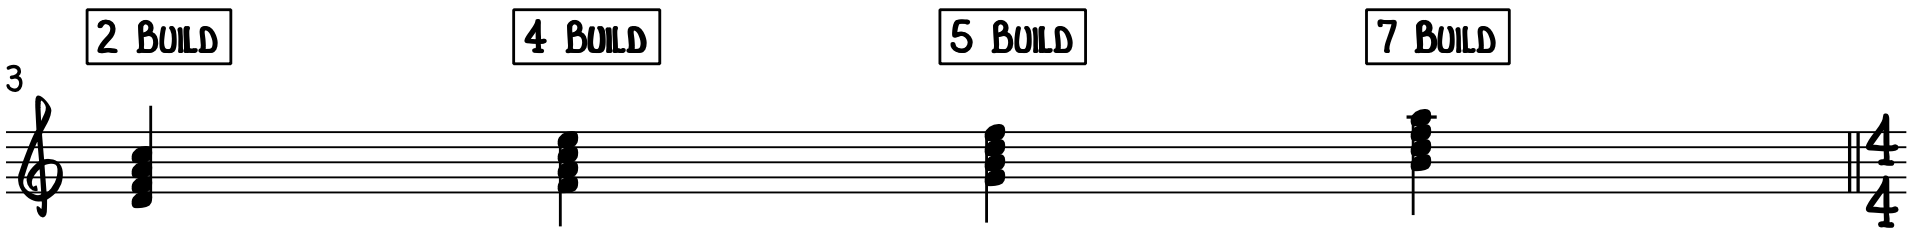 Improvise with Diatonic 7th Chords—Secondary Pairs